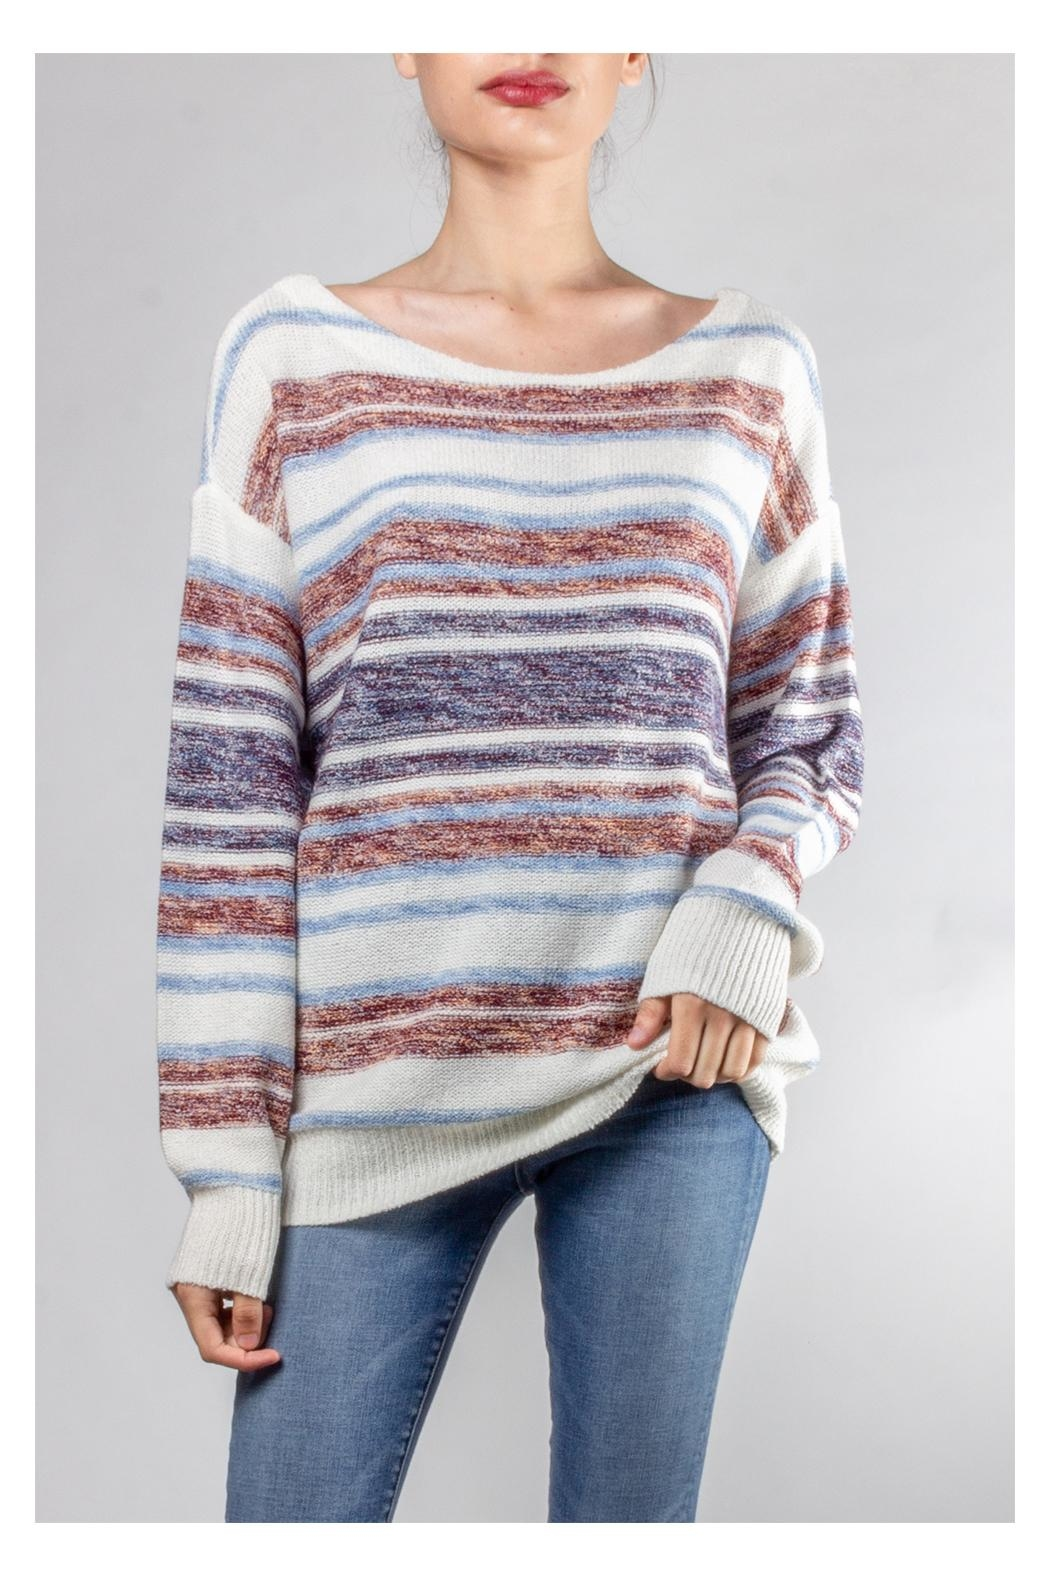 Hem & Thread Cozy Striped Sweater - Main Image